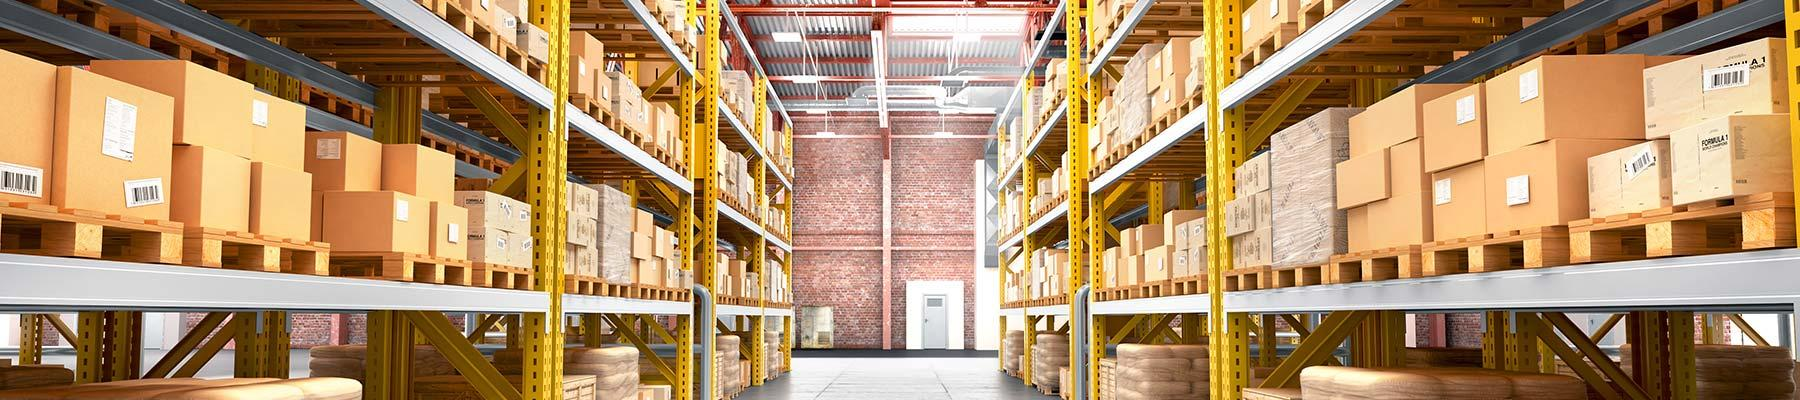 Your Warehouse and Integration Center